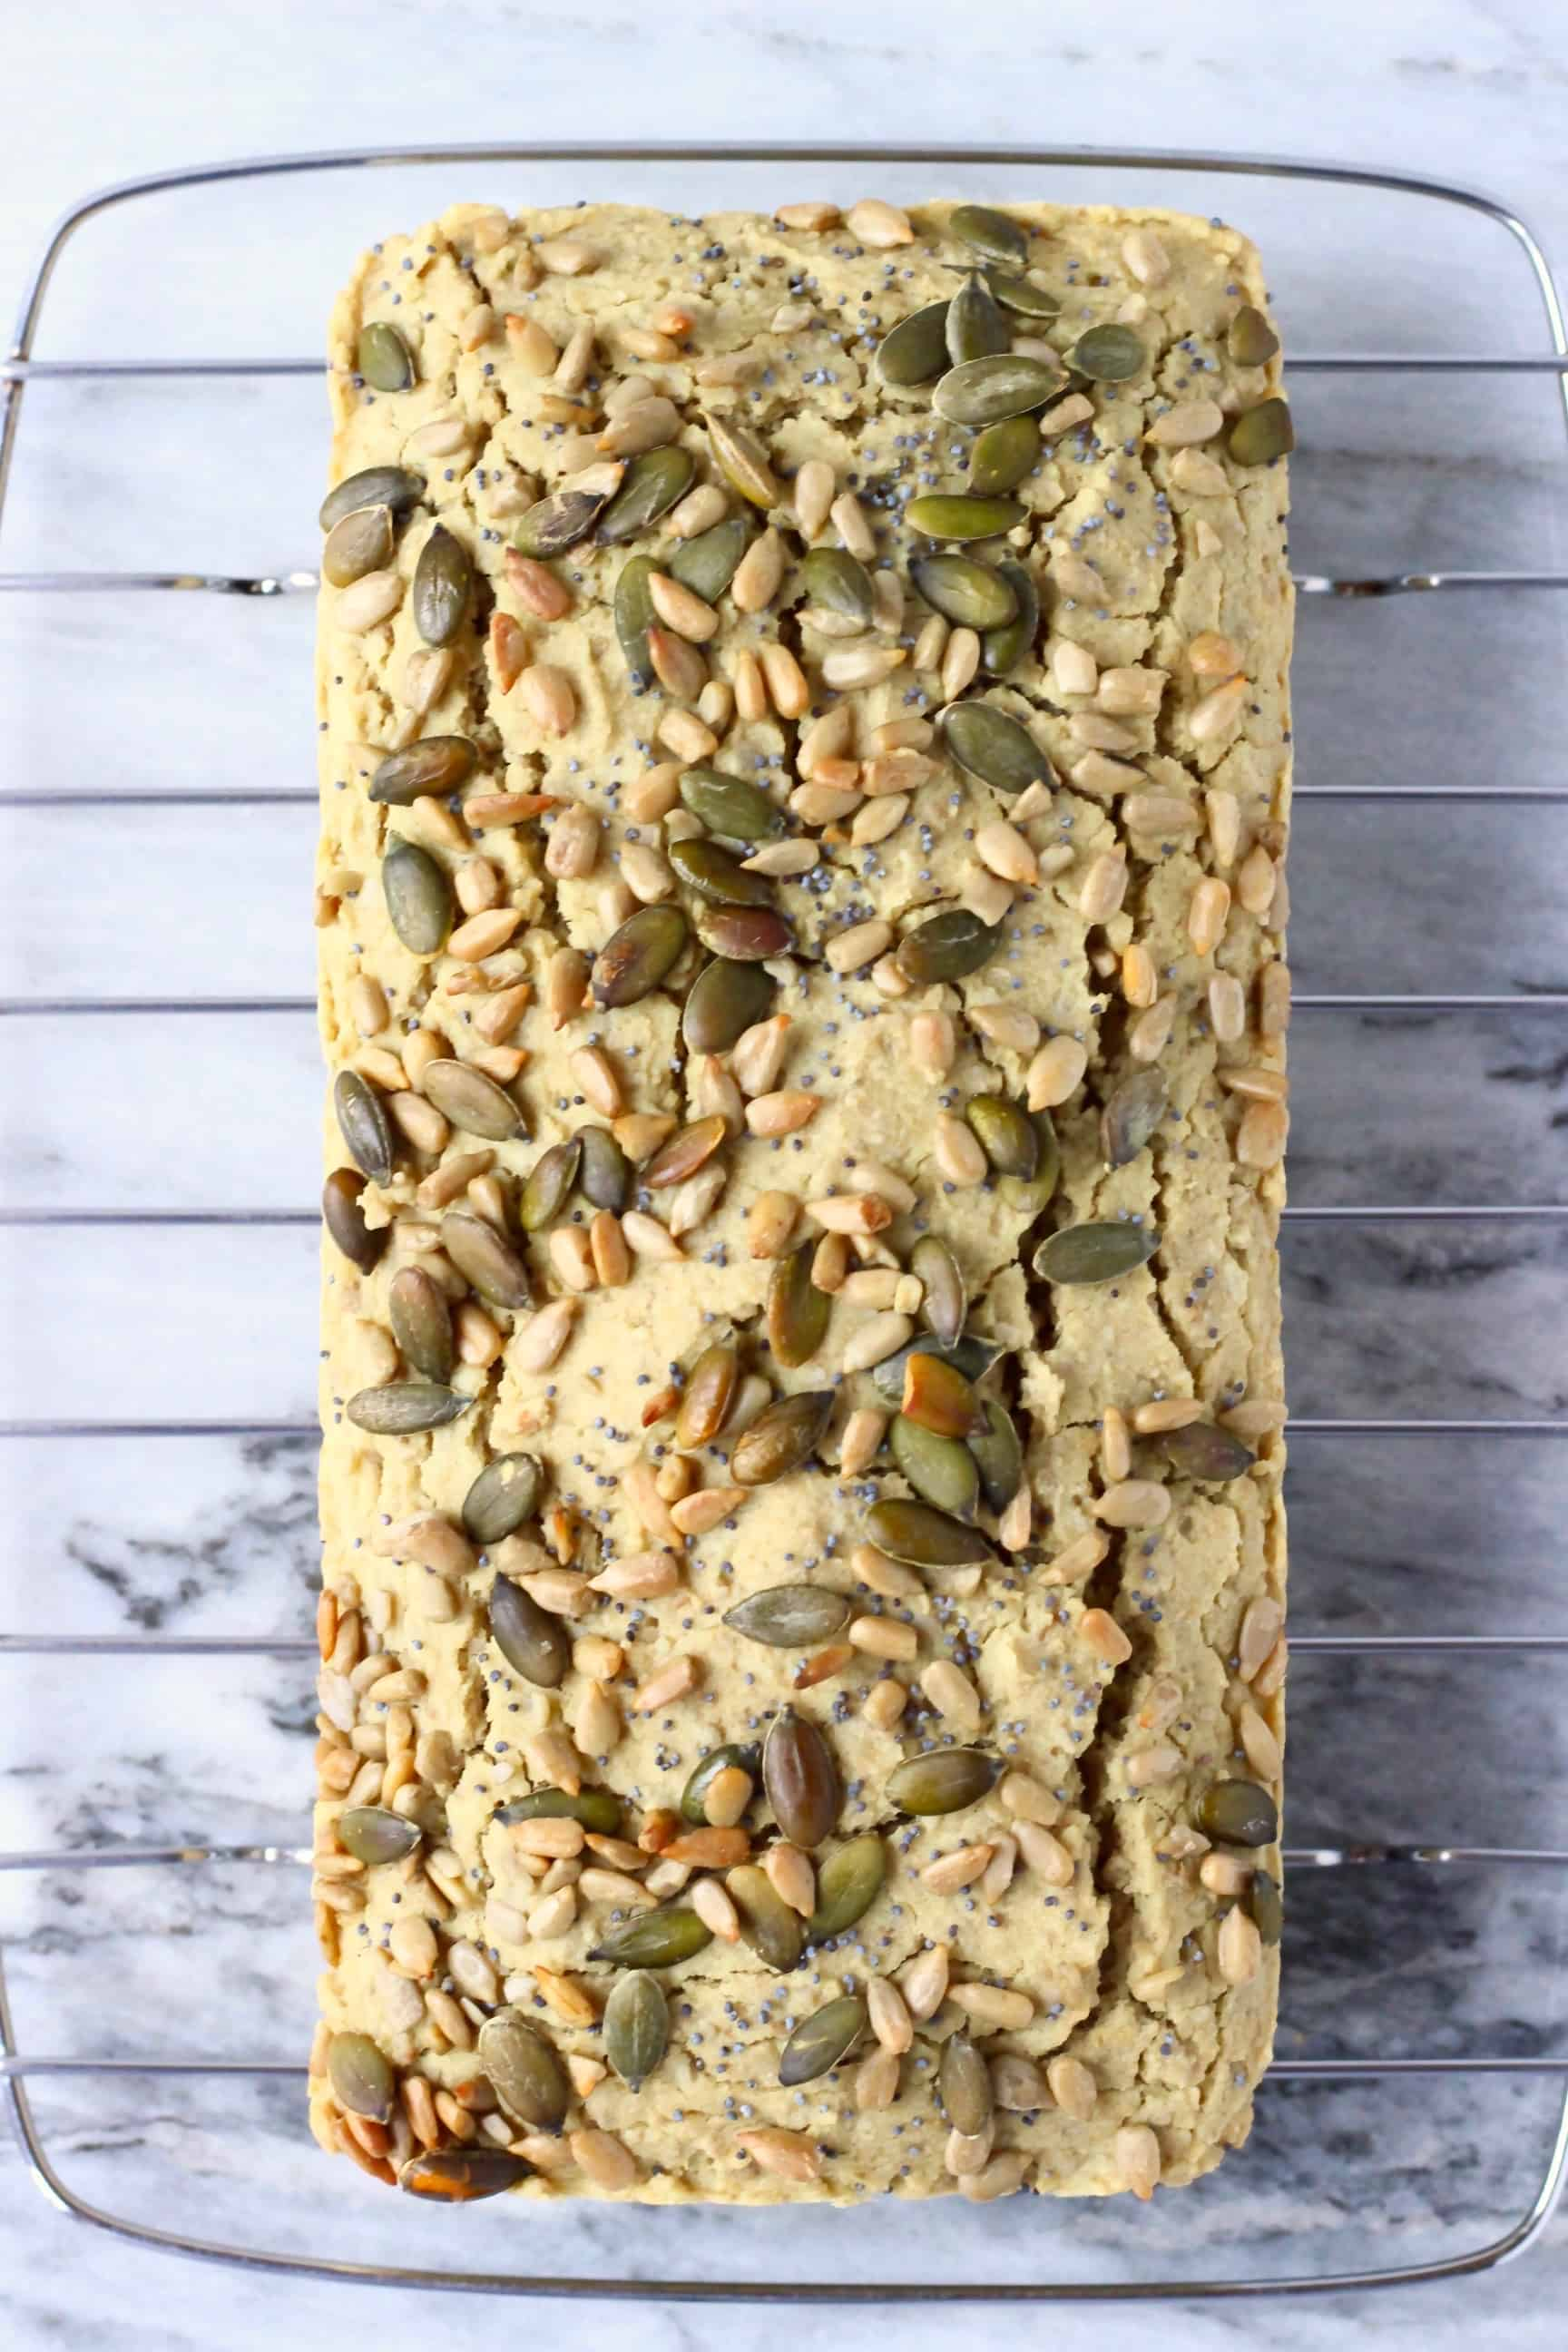 A loaf of sunflower seed bread topped with mixed seeds on a cooling rack